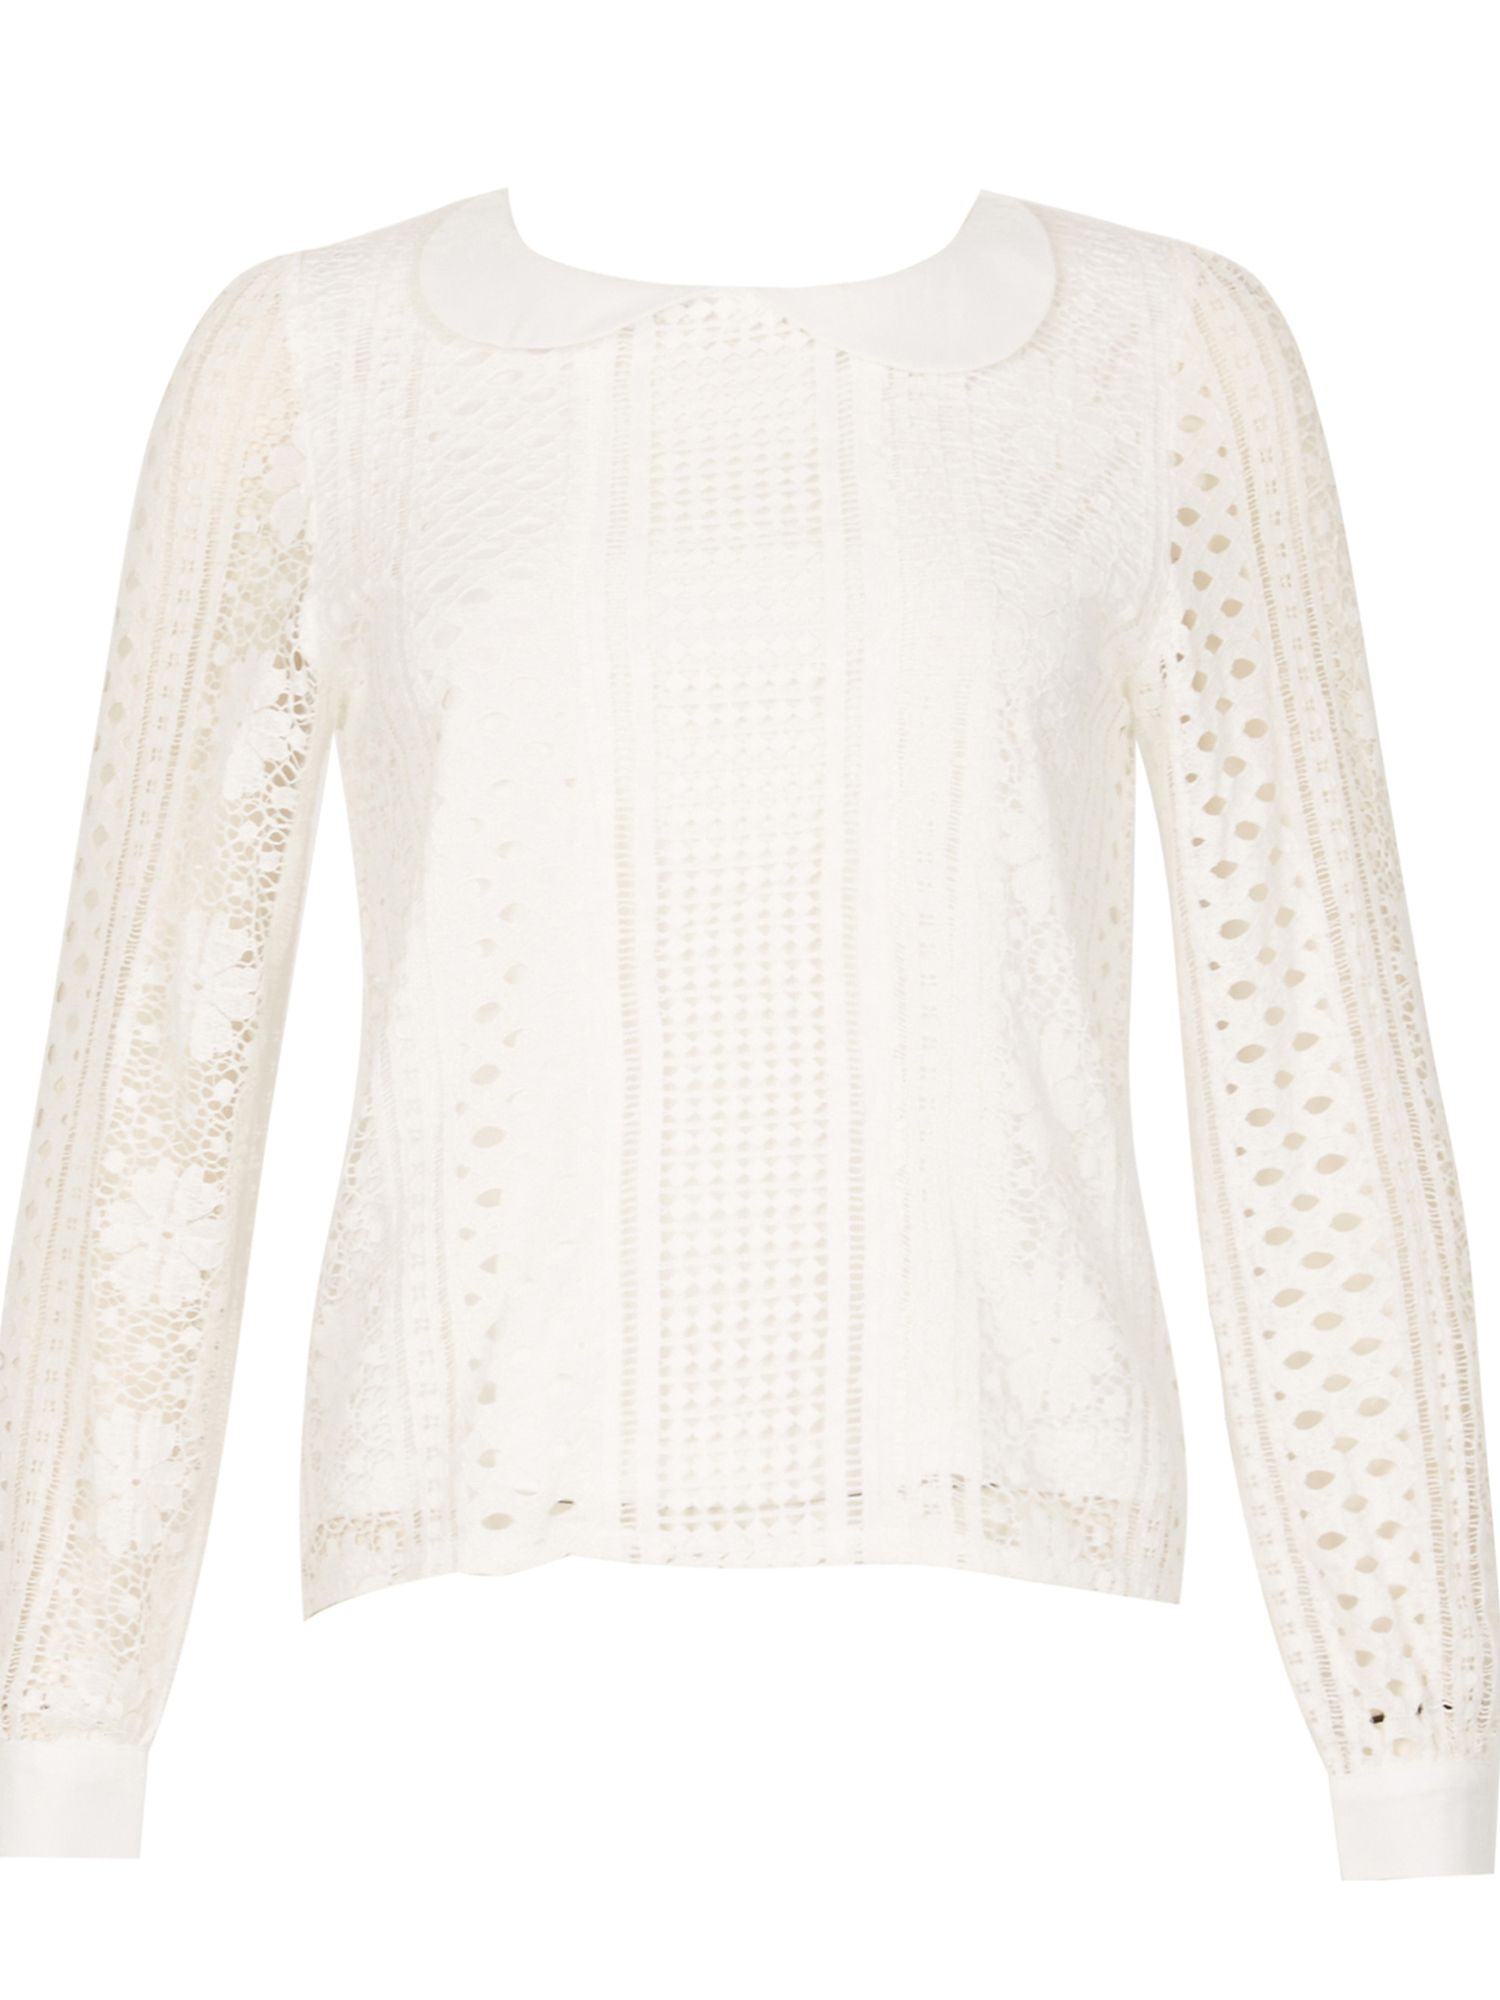 Cutie Peter Pan Lace Blouse, White